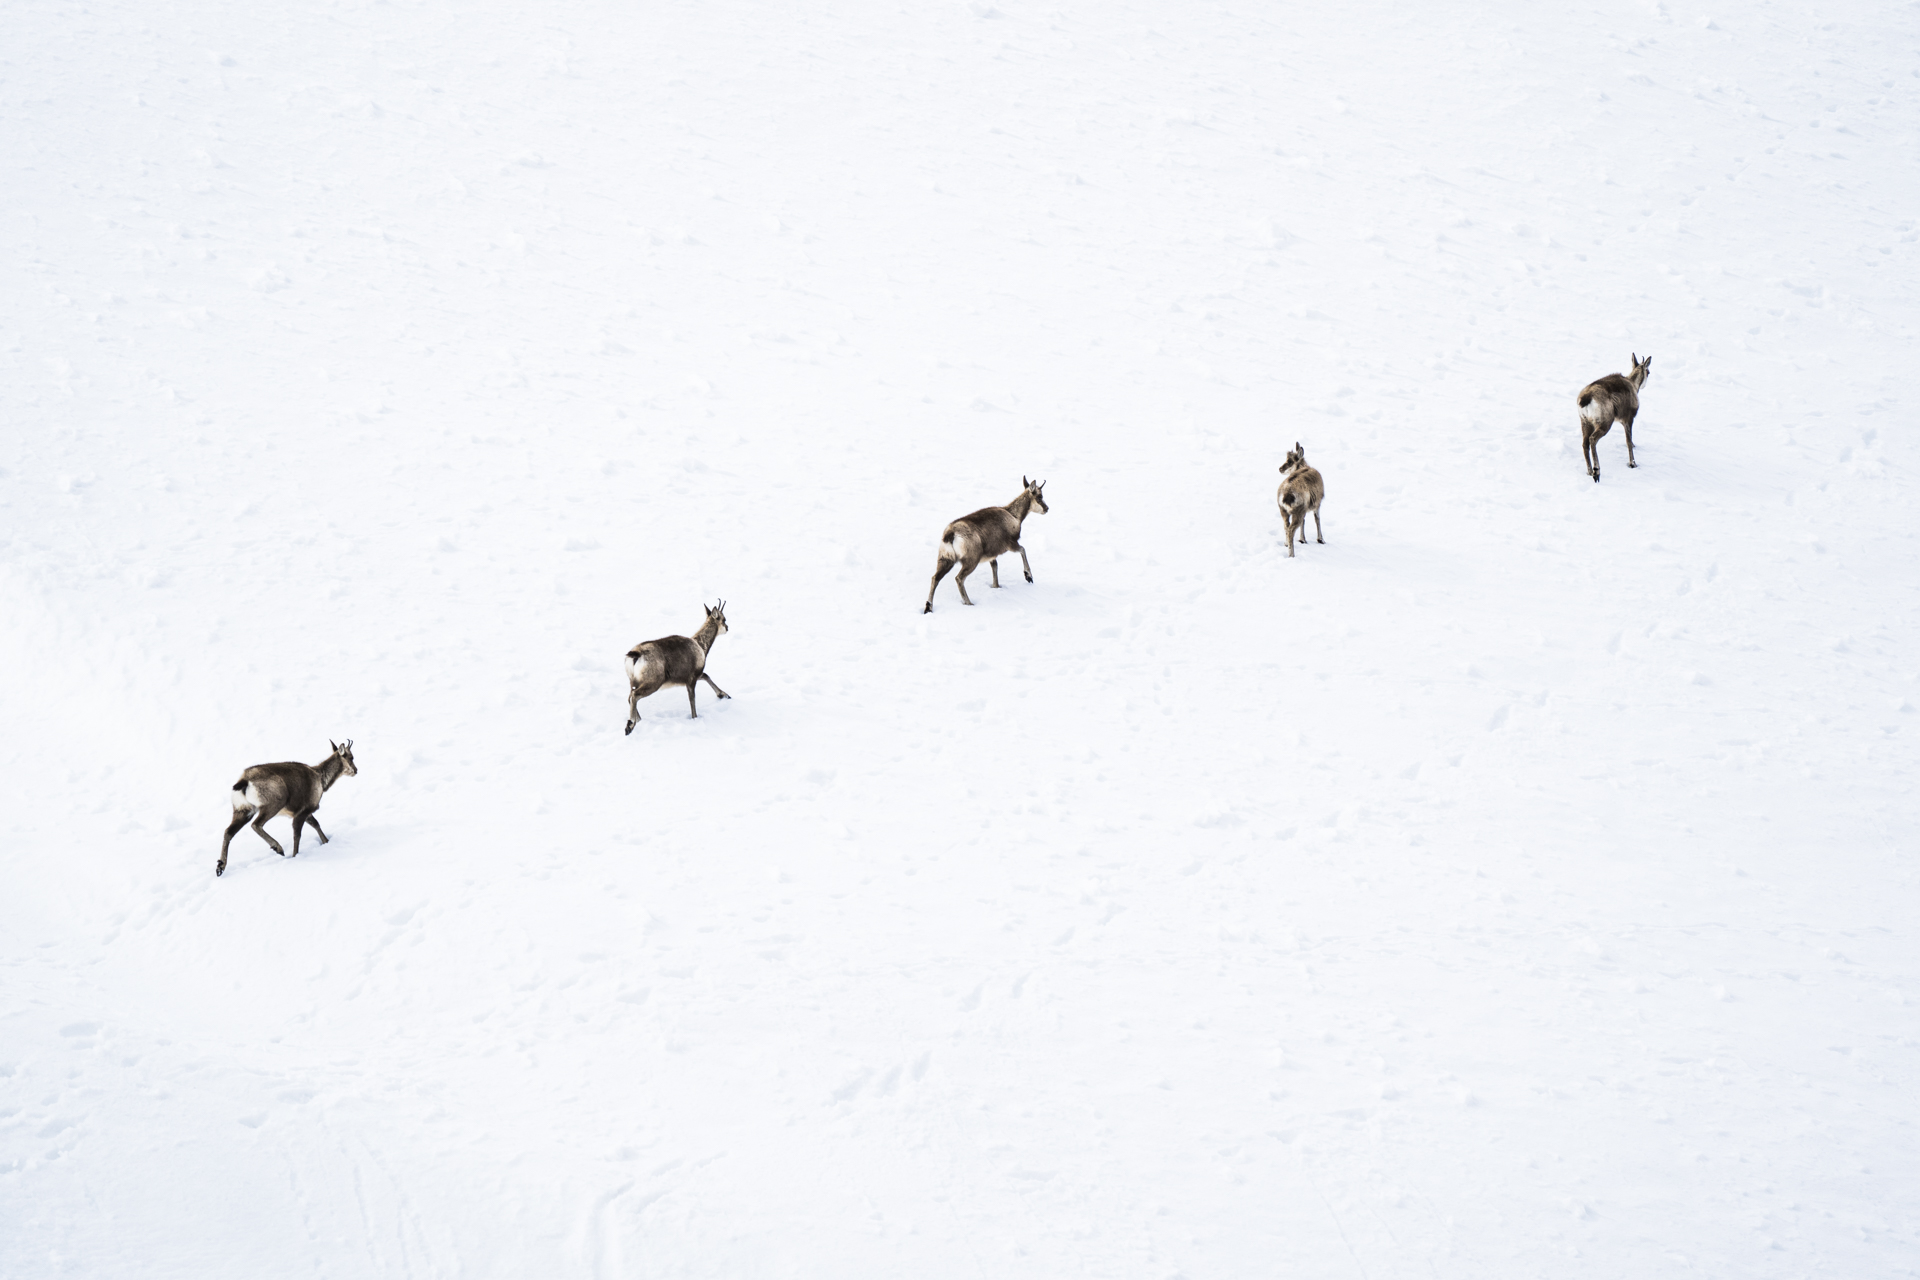 A quintet of chamois walk across a snowy slope.